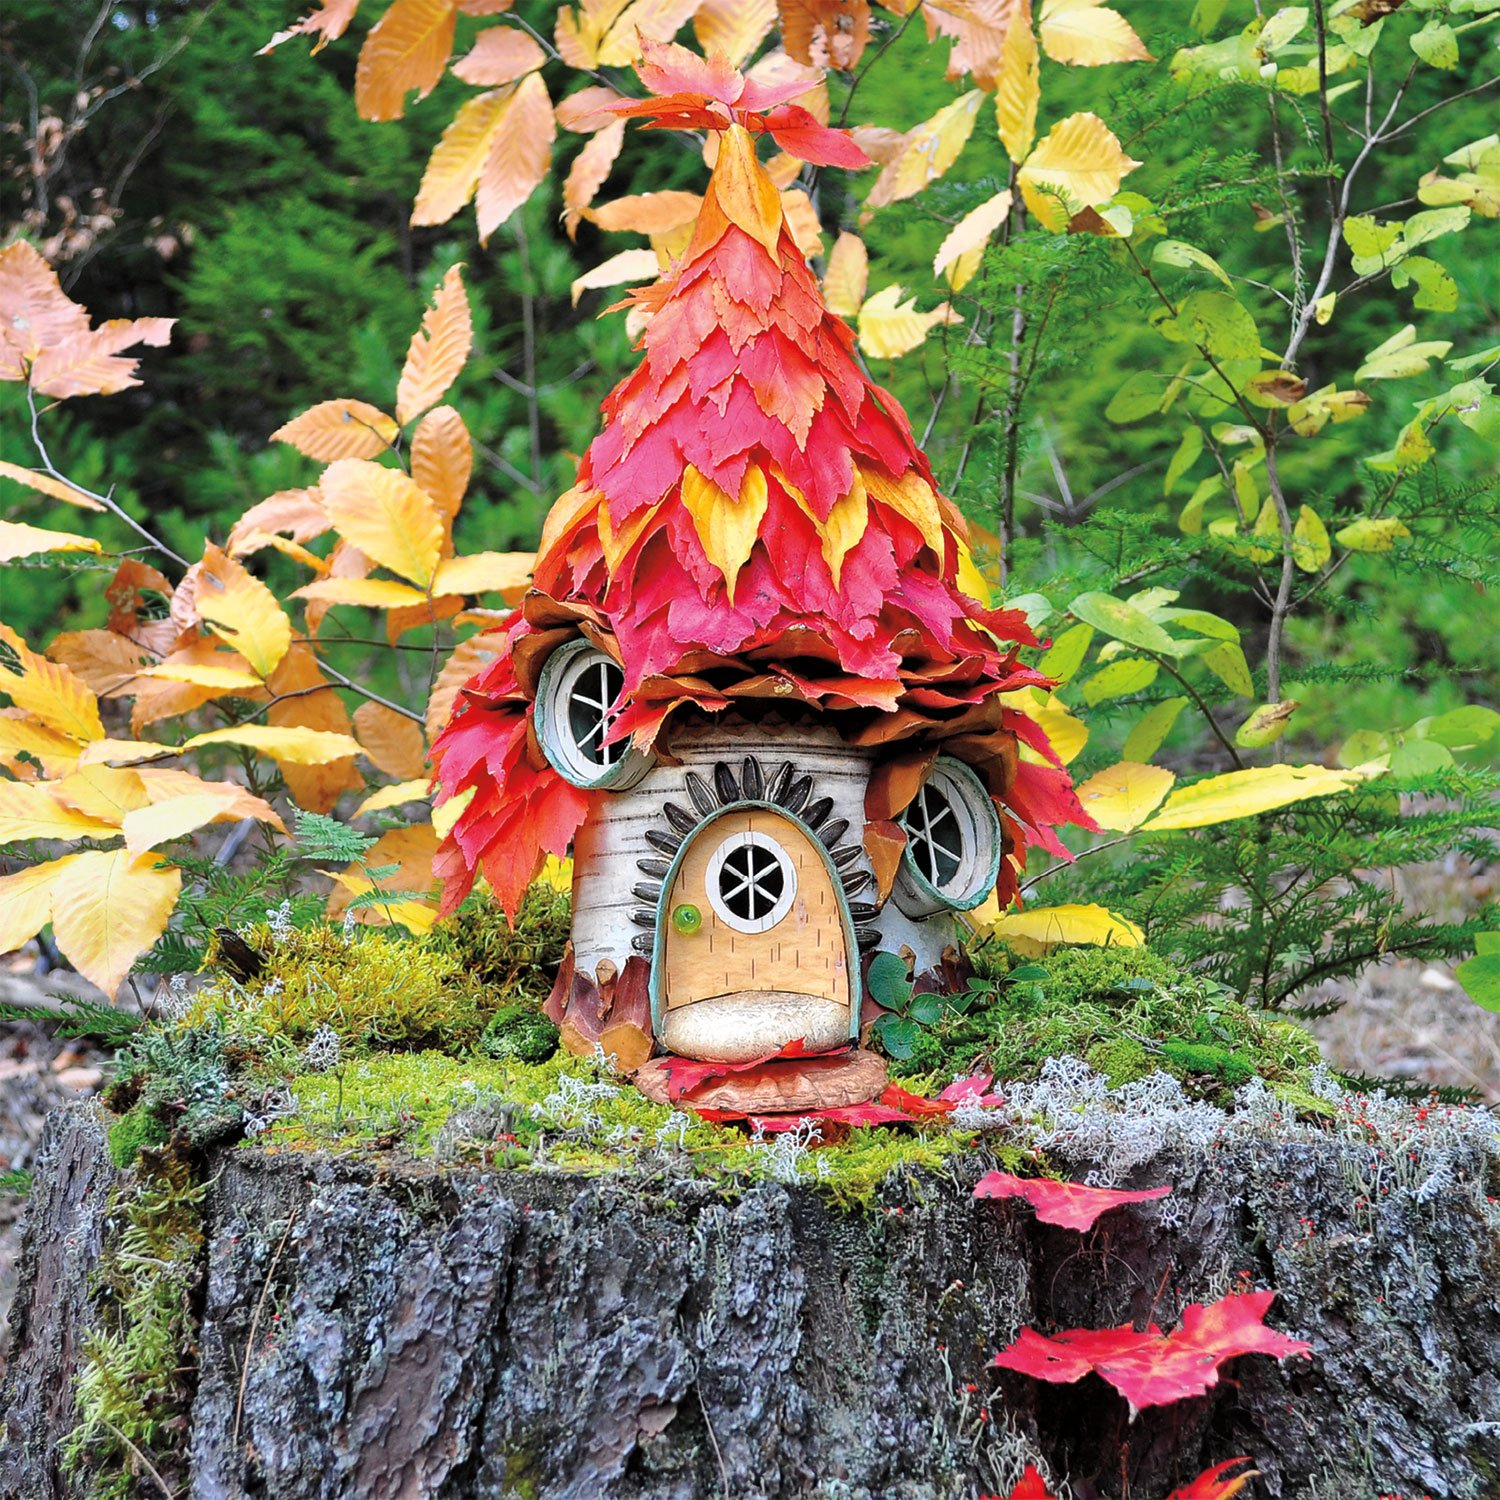 Amazon.com: Fairy Houses 2017 Wall Calendar (9781631361395): Sally J.  Smith, Amber Lotus Publishing: Books